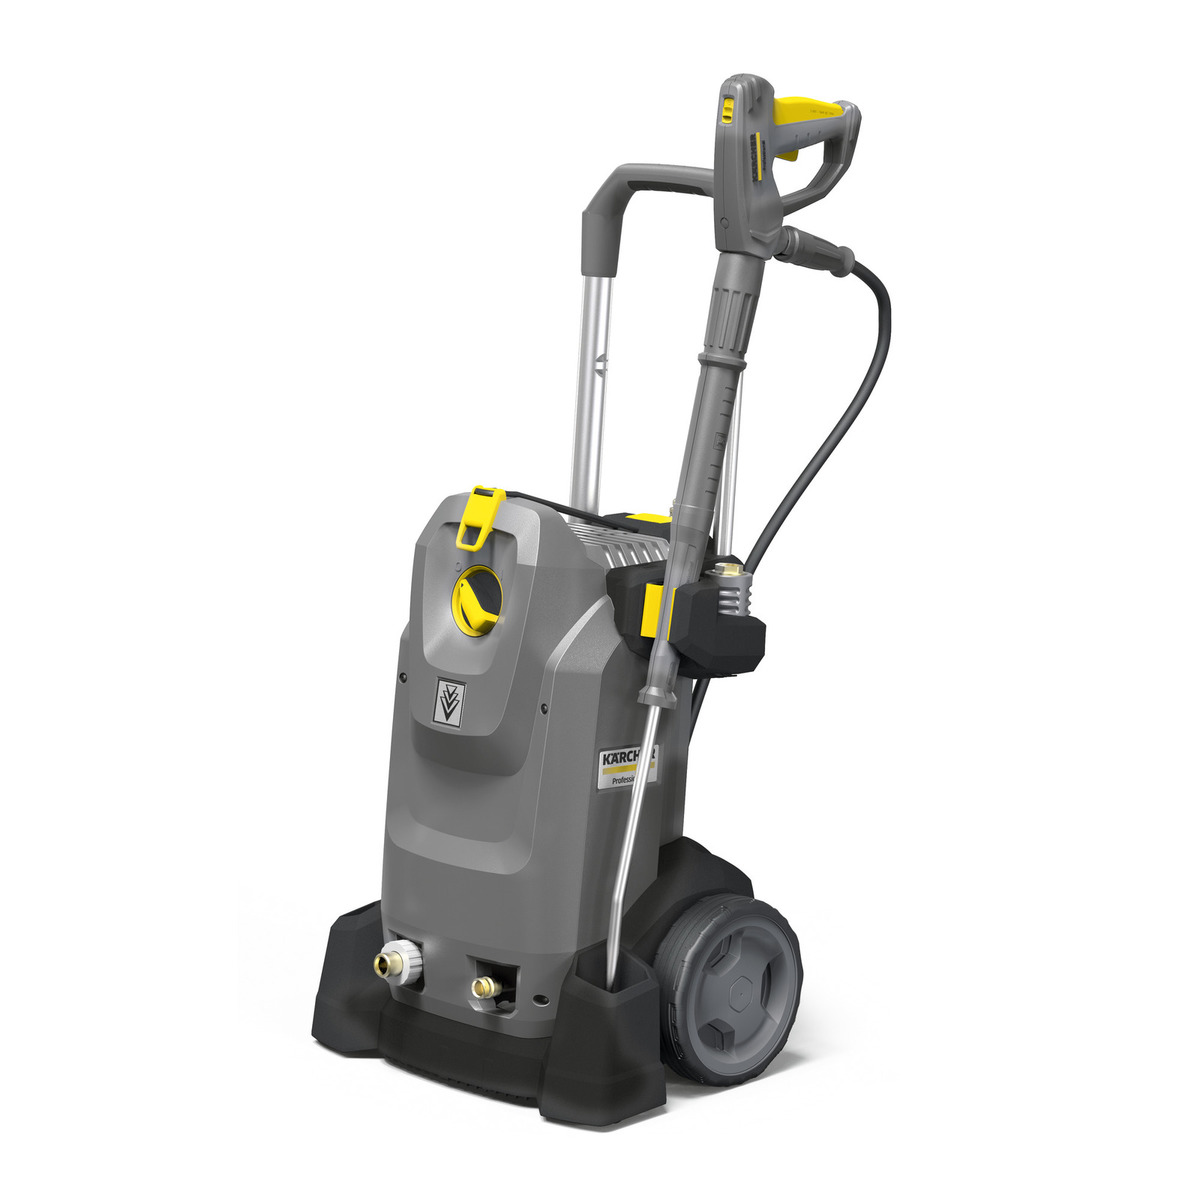 HD 615M PLUS, HIGH PRESSURE CLEANER